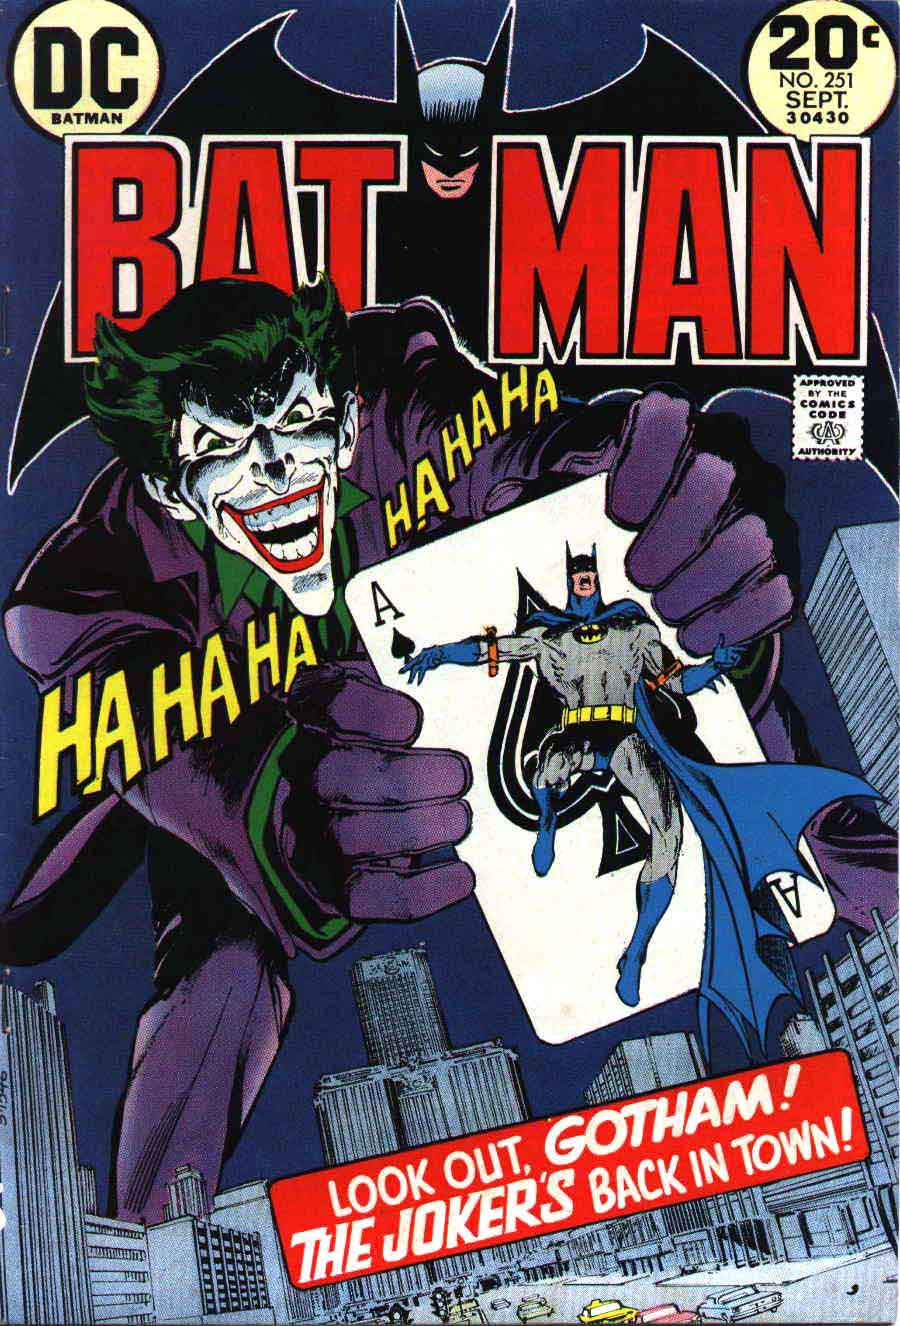 Batman (1940) #251. Cover by Neal Adams.